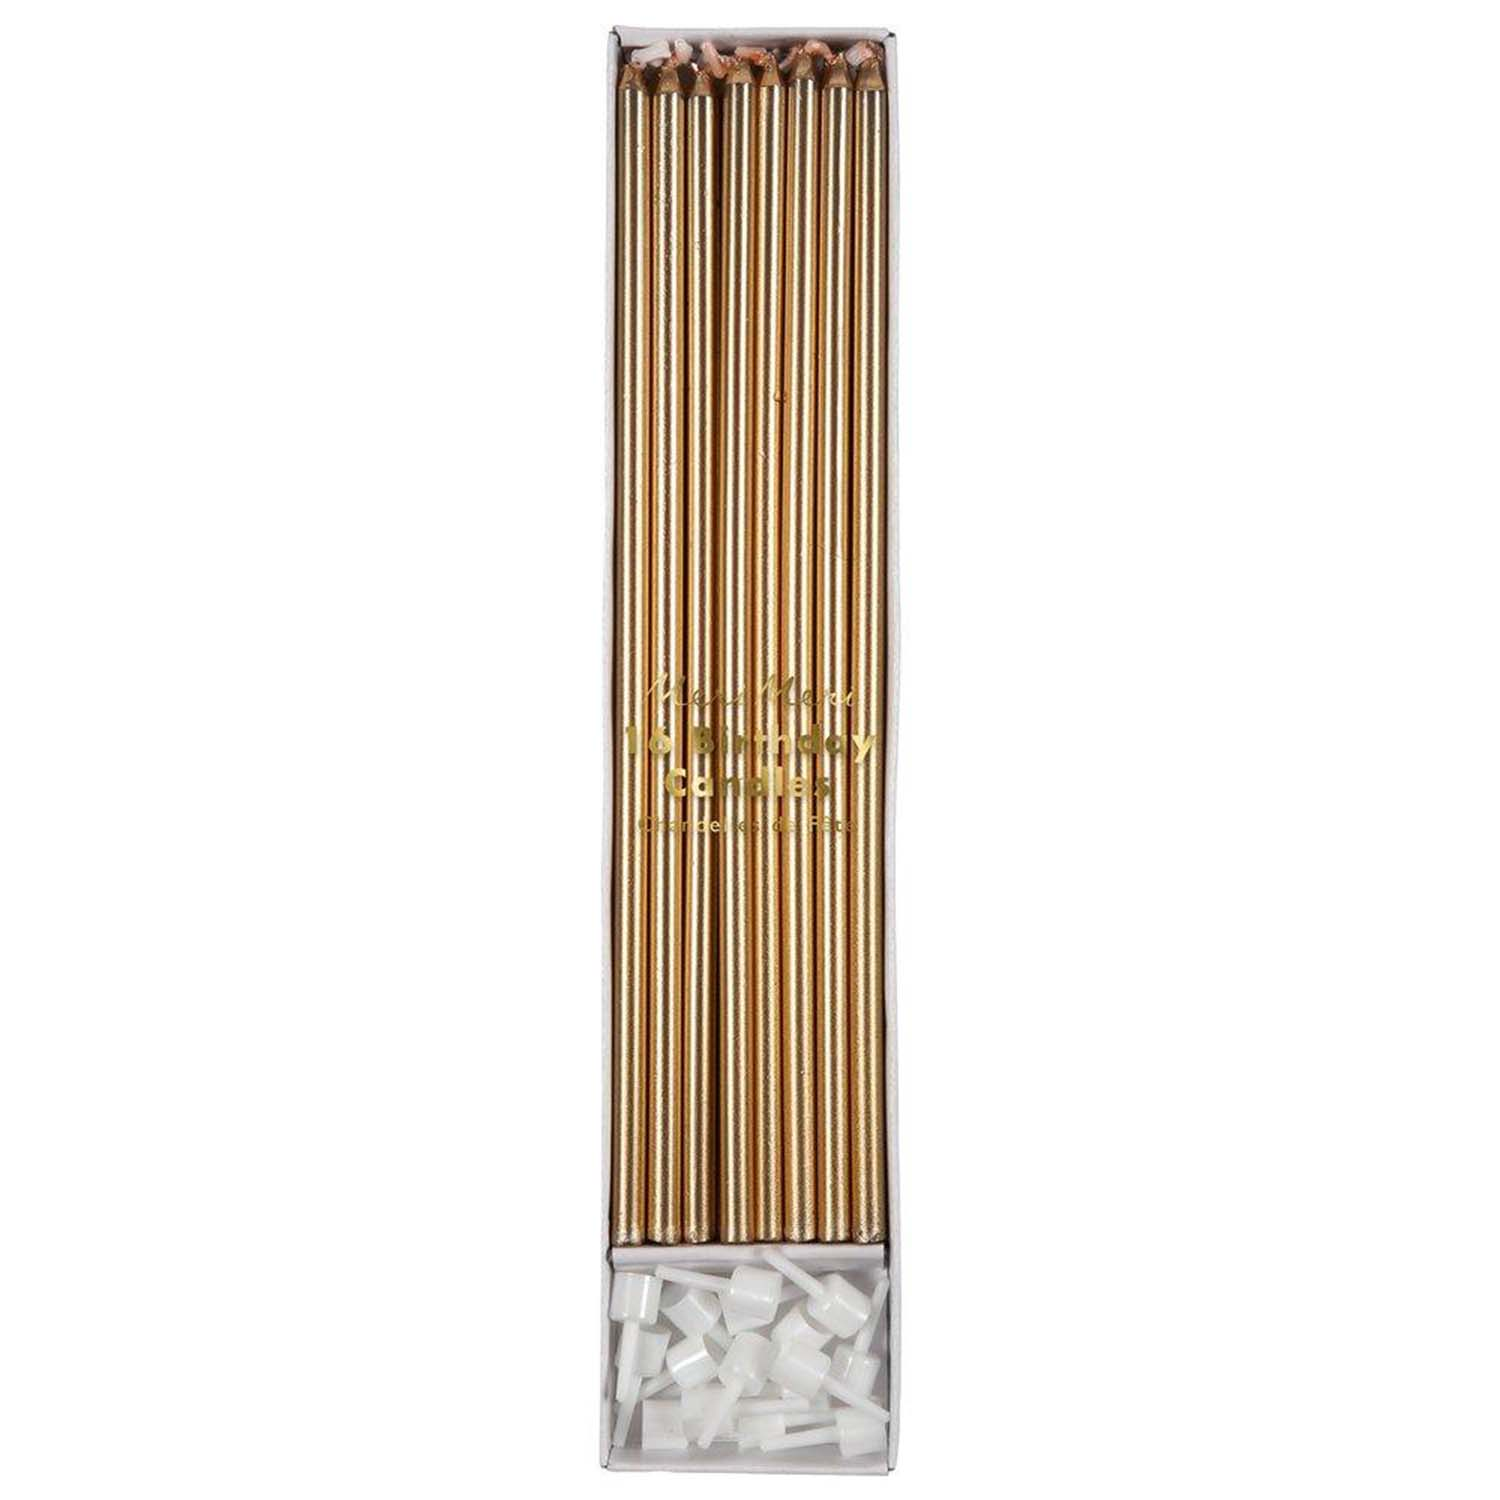 Metallic Gold Tall Party Candles